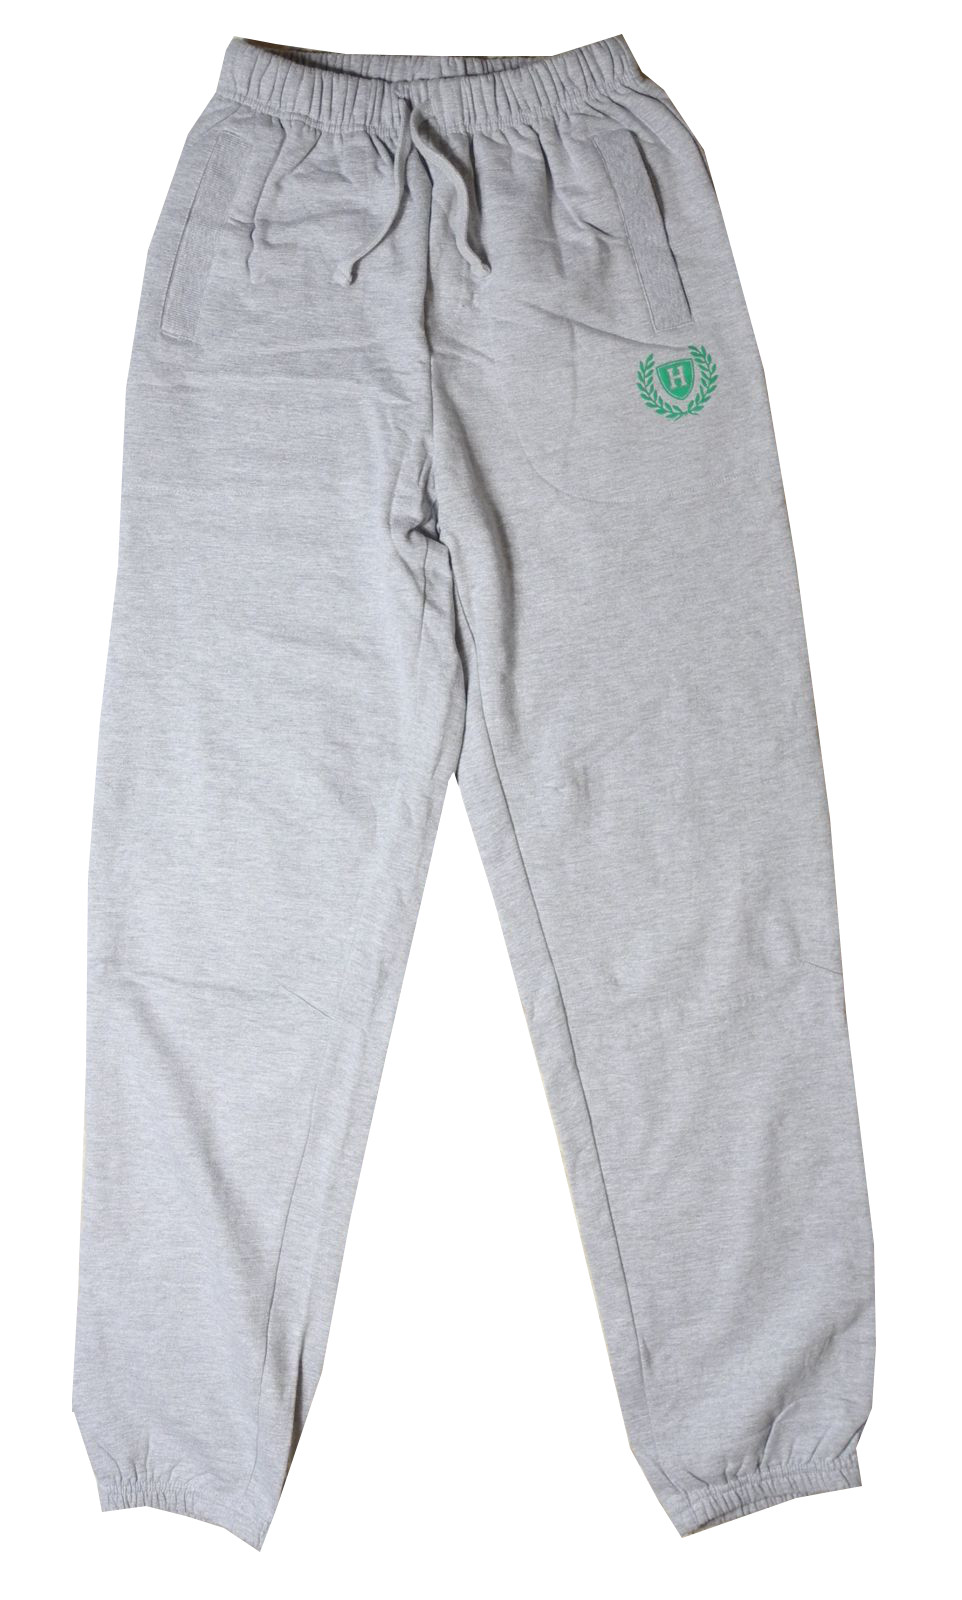 Choose from skinny track pants, joggers, sweatpants and tracksuit bottoms for whatever your activity of choice is. You'll find huge bargains and discount prices on brand such as Nike, Puma, Under Armour, Slazenger and adidas.